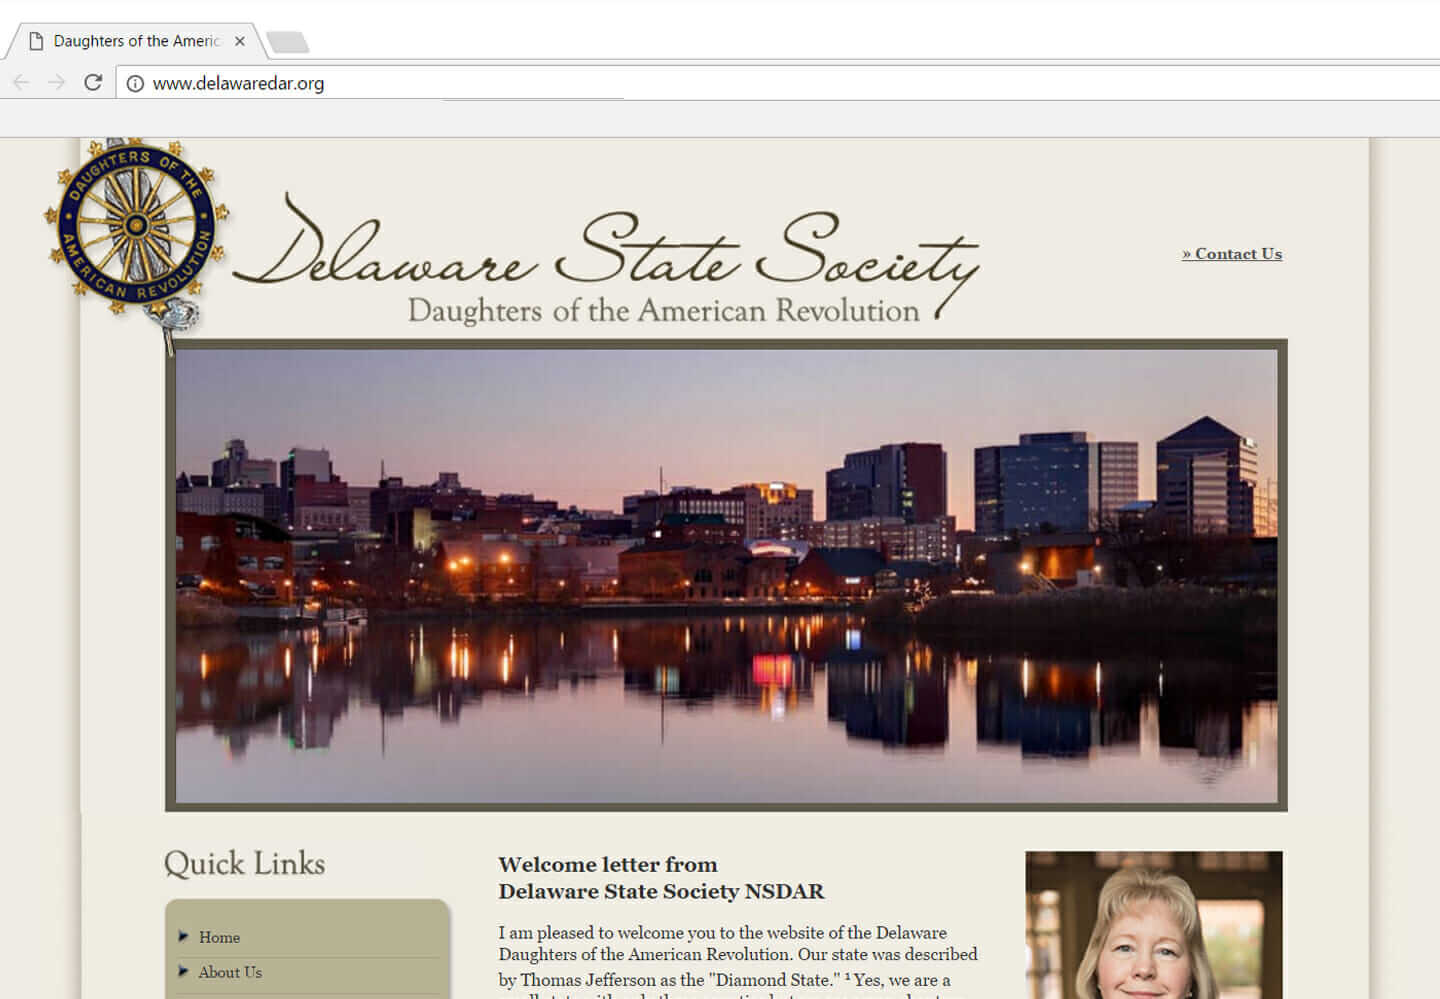 Delaware State Society DAR (Daughters of the American Revolution), Wilmington DE